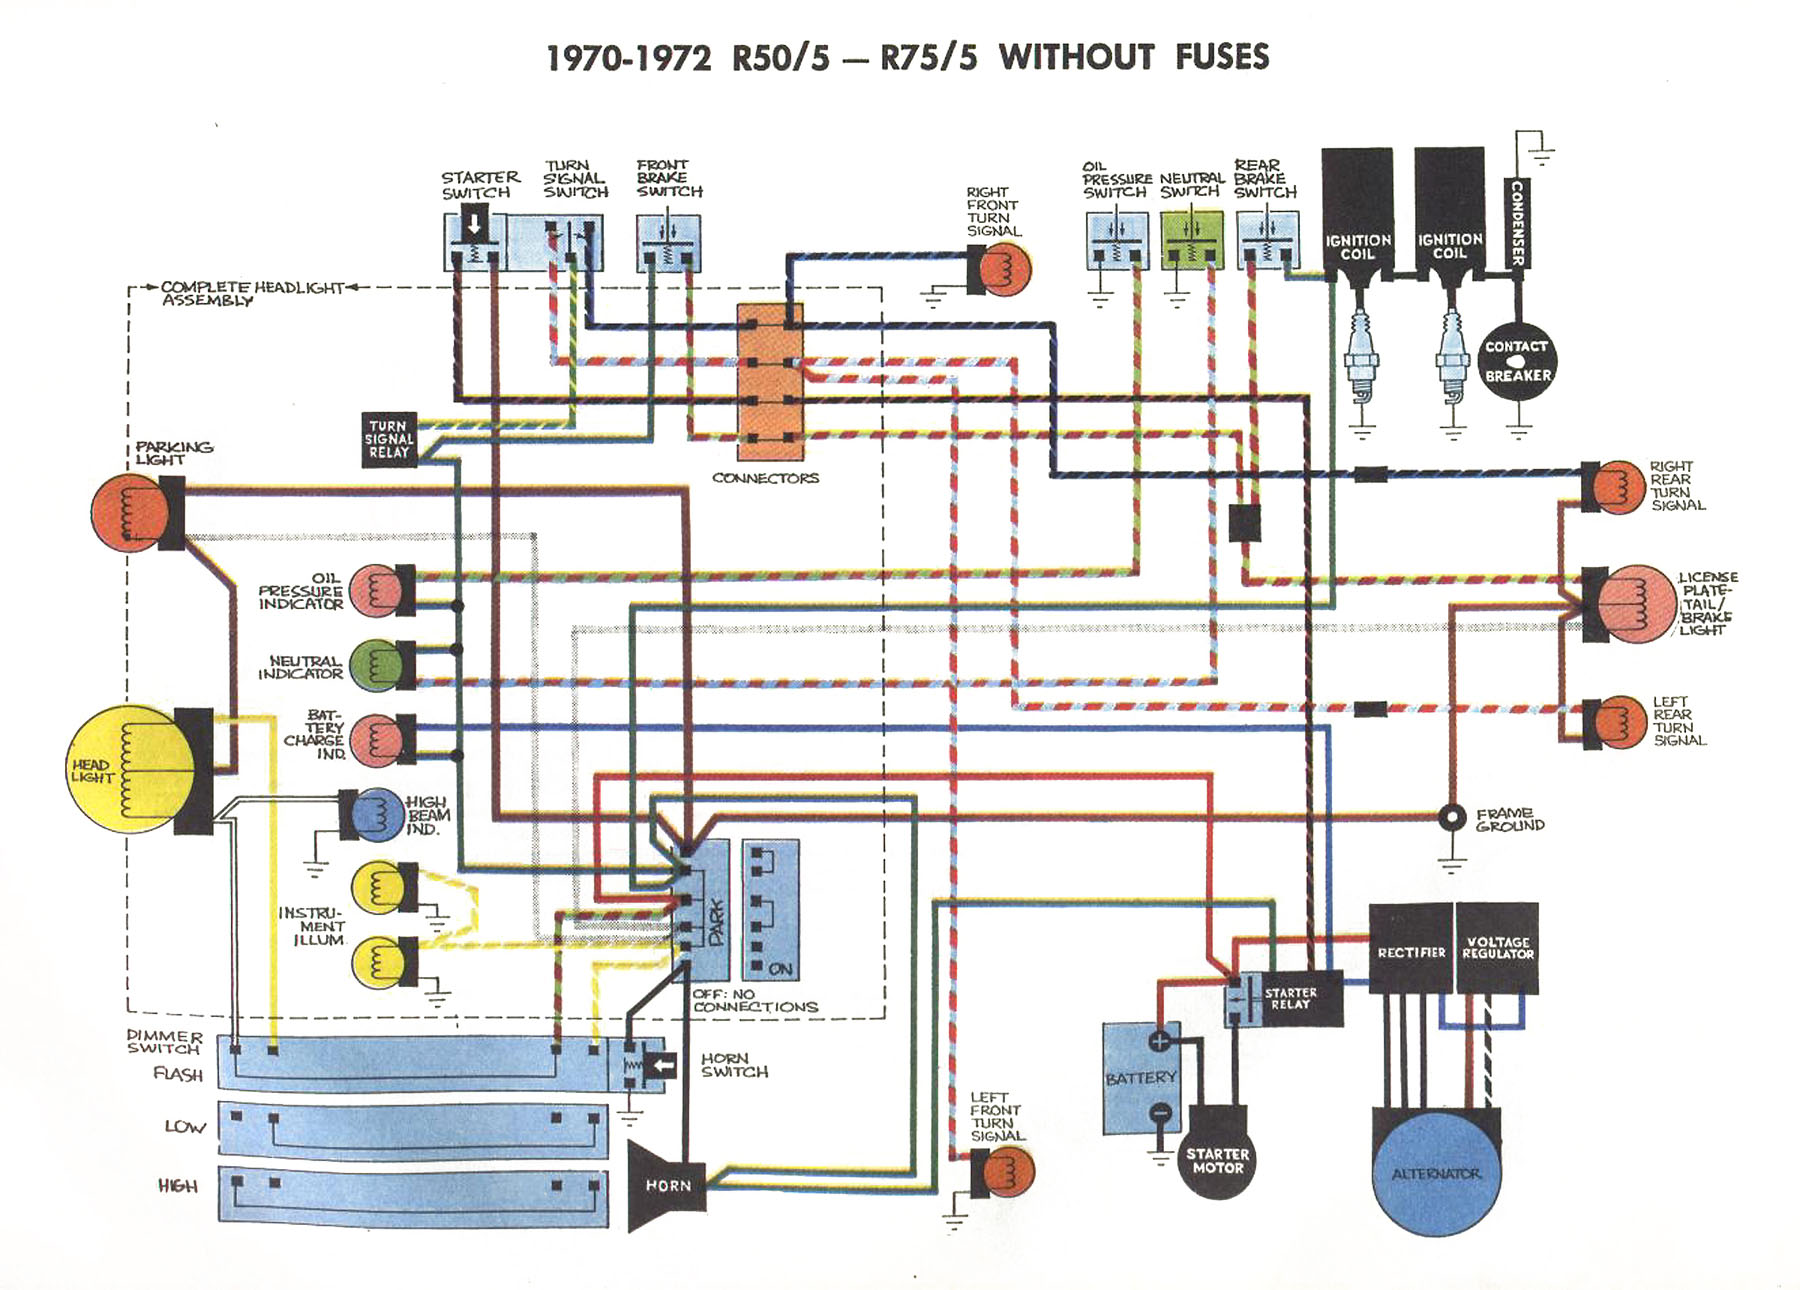 5_unfused_schematic 5 united articles wiring diagrams bmw r100rs gauge wiring diagram at edmiracle.co